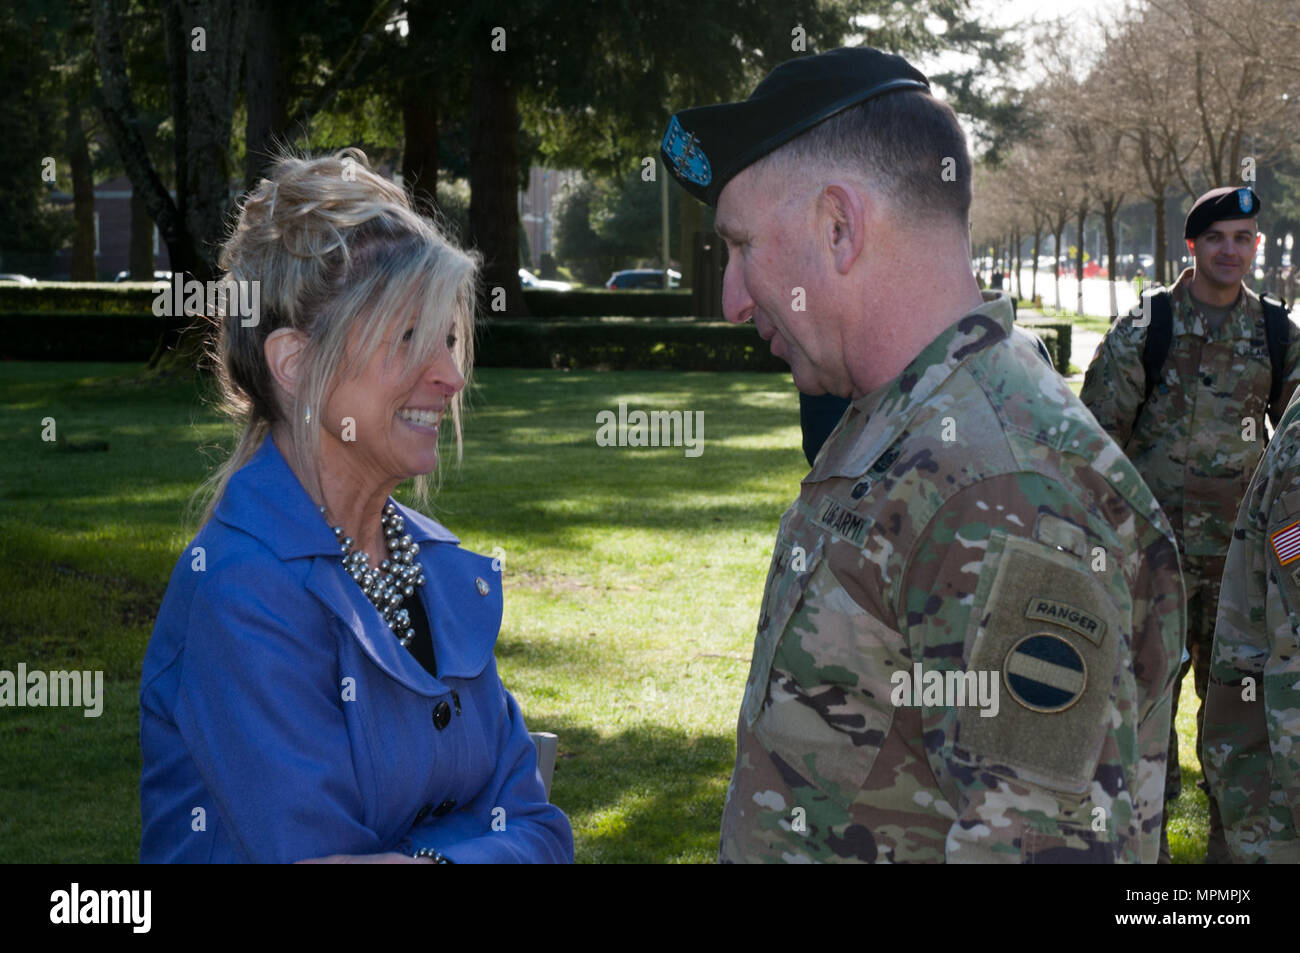 Madeline Lanza (left), an advocate for better schooling for military children and wife of Lt. Gen. Stephen R. Lanza, Commanding General of I Corps, greets U.S. Army Forces Command Commanding General Gen. Robert B. Abrams (right) prior to I Corps' Change of Command on Joint Base Lewis-McChord, Washington, Apr. 3. Mrs. Lanza is a large supporter of military life and what it entails for the spouses and children. (U.S. Army photo by Sgt. David N. Beckstrom, 5th Mobile Public Affairs Detachment, I Corps)